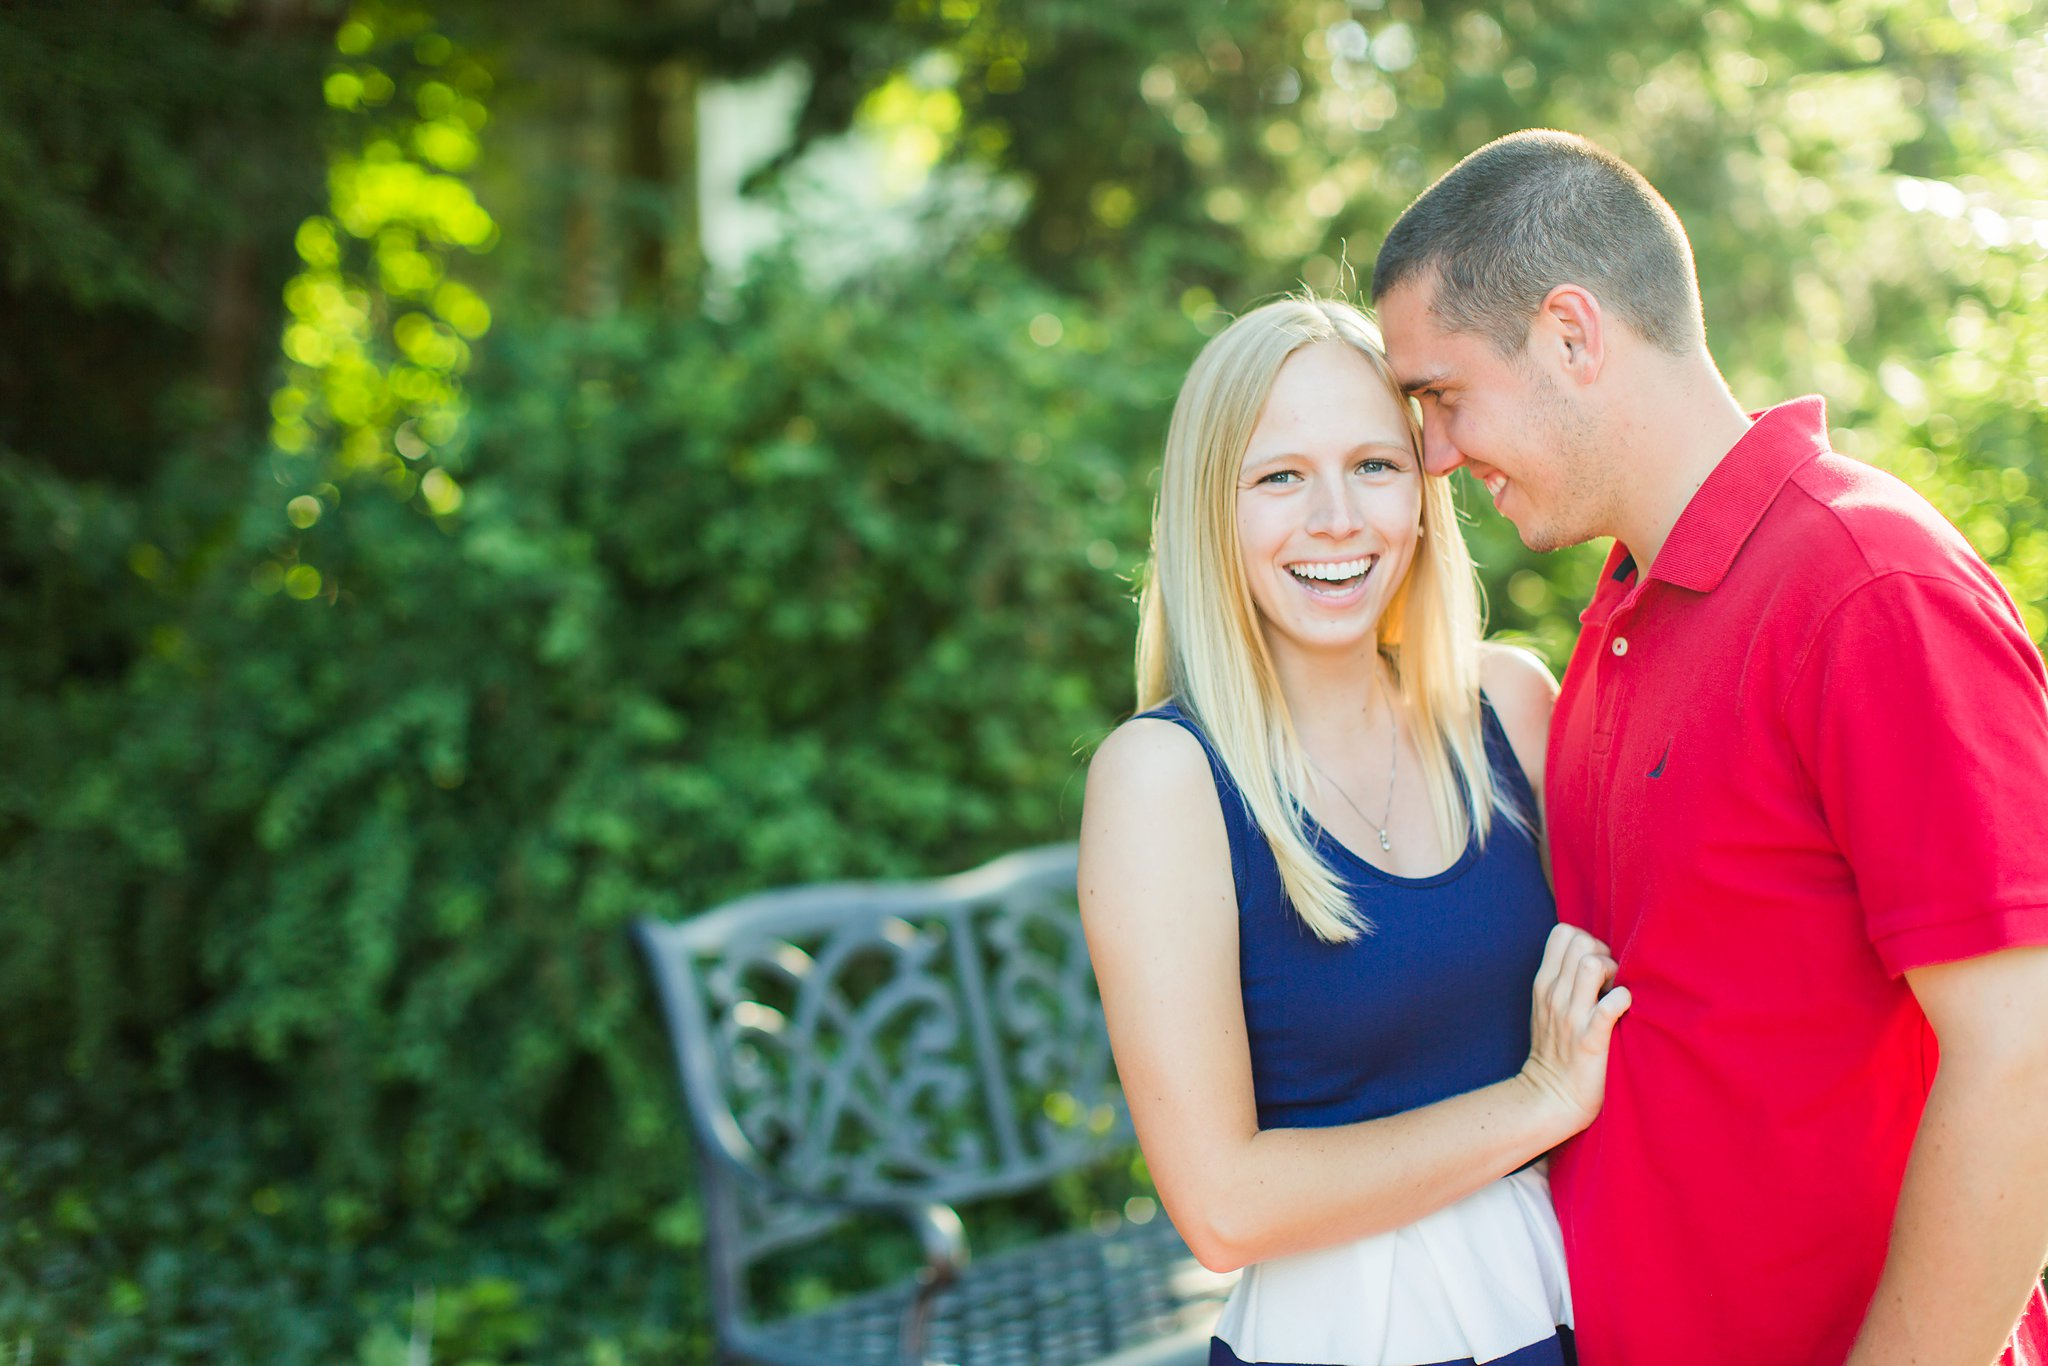 Silver Lake Engagement Photos Michigan Wedding Photographer Megan Kelsey Photography-9325.jpg